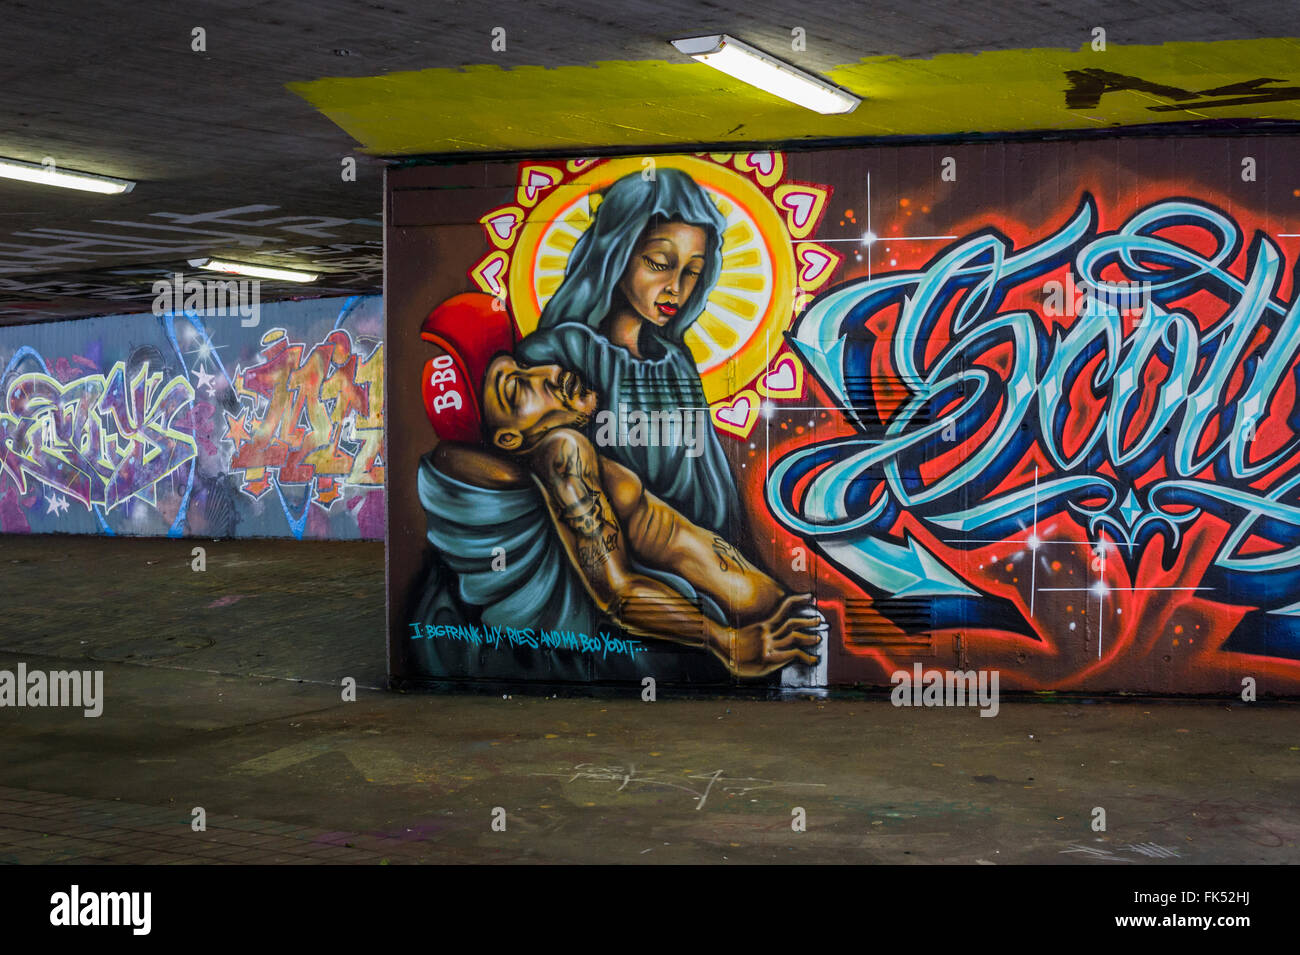 graffito gangster-pietà - Stock Image